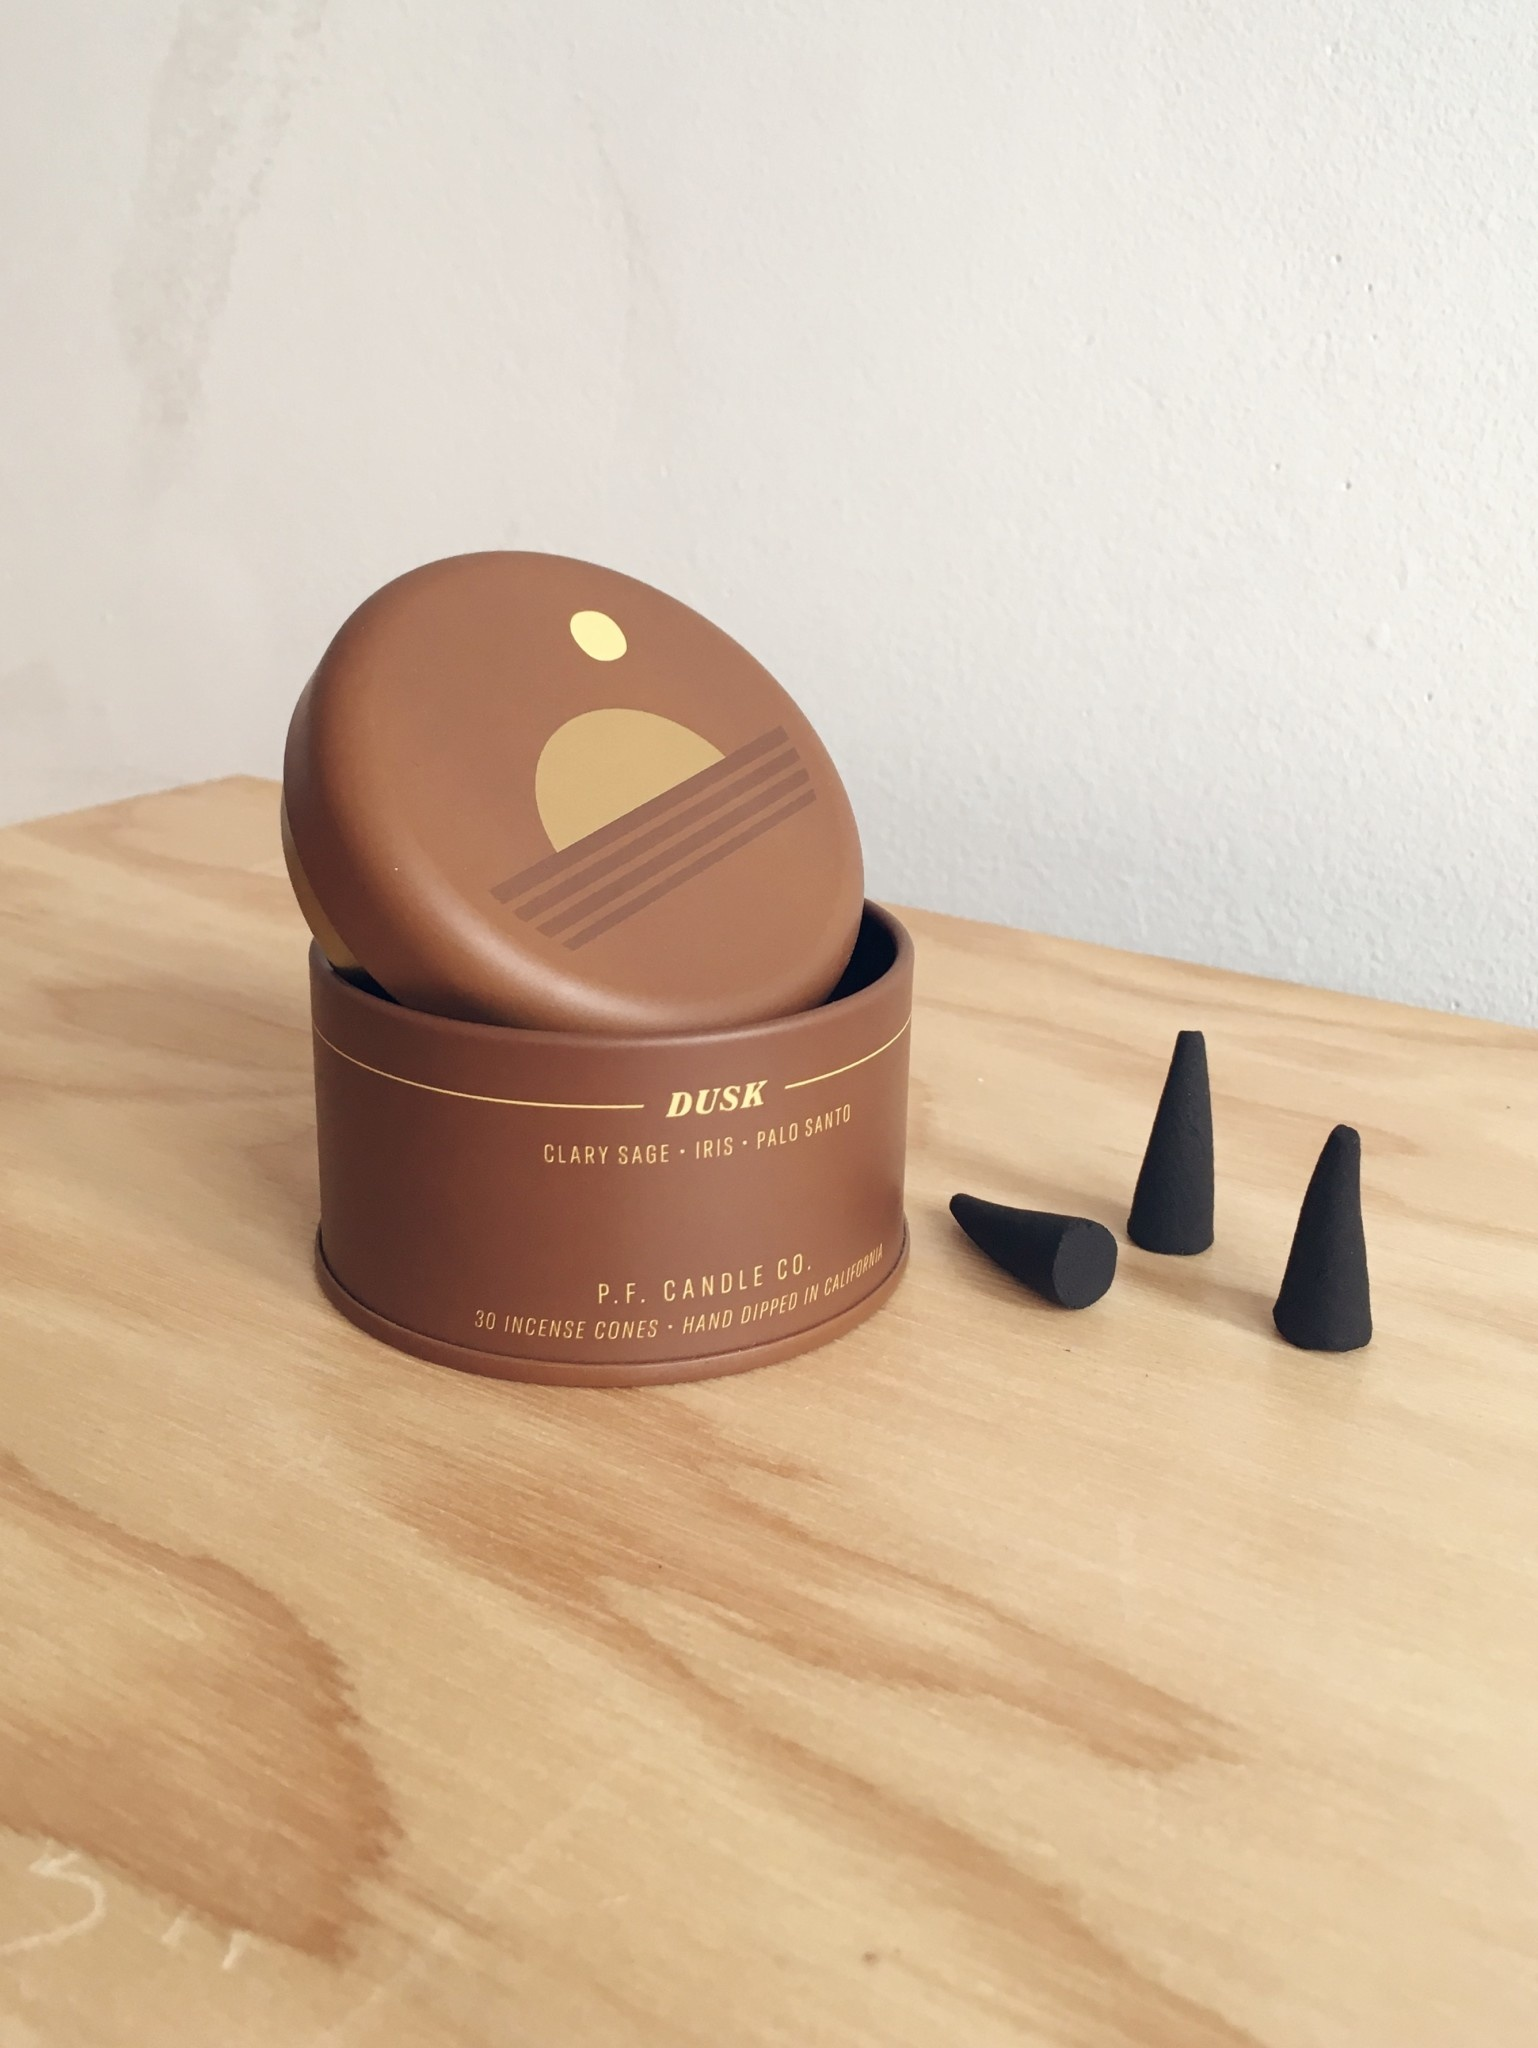 P.F. Candle Co Sunset Incense Cones